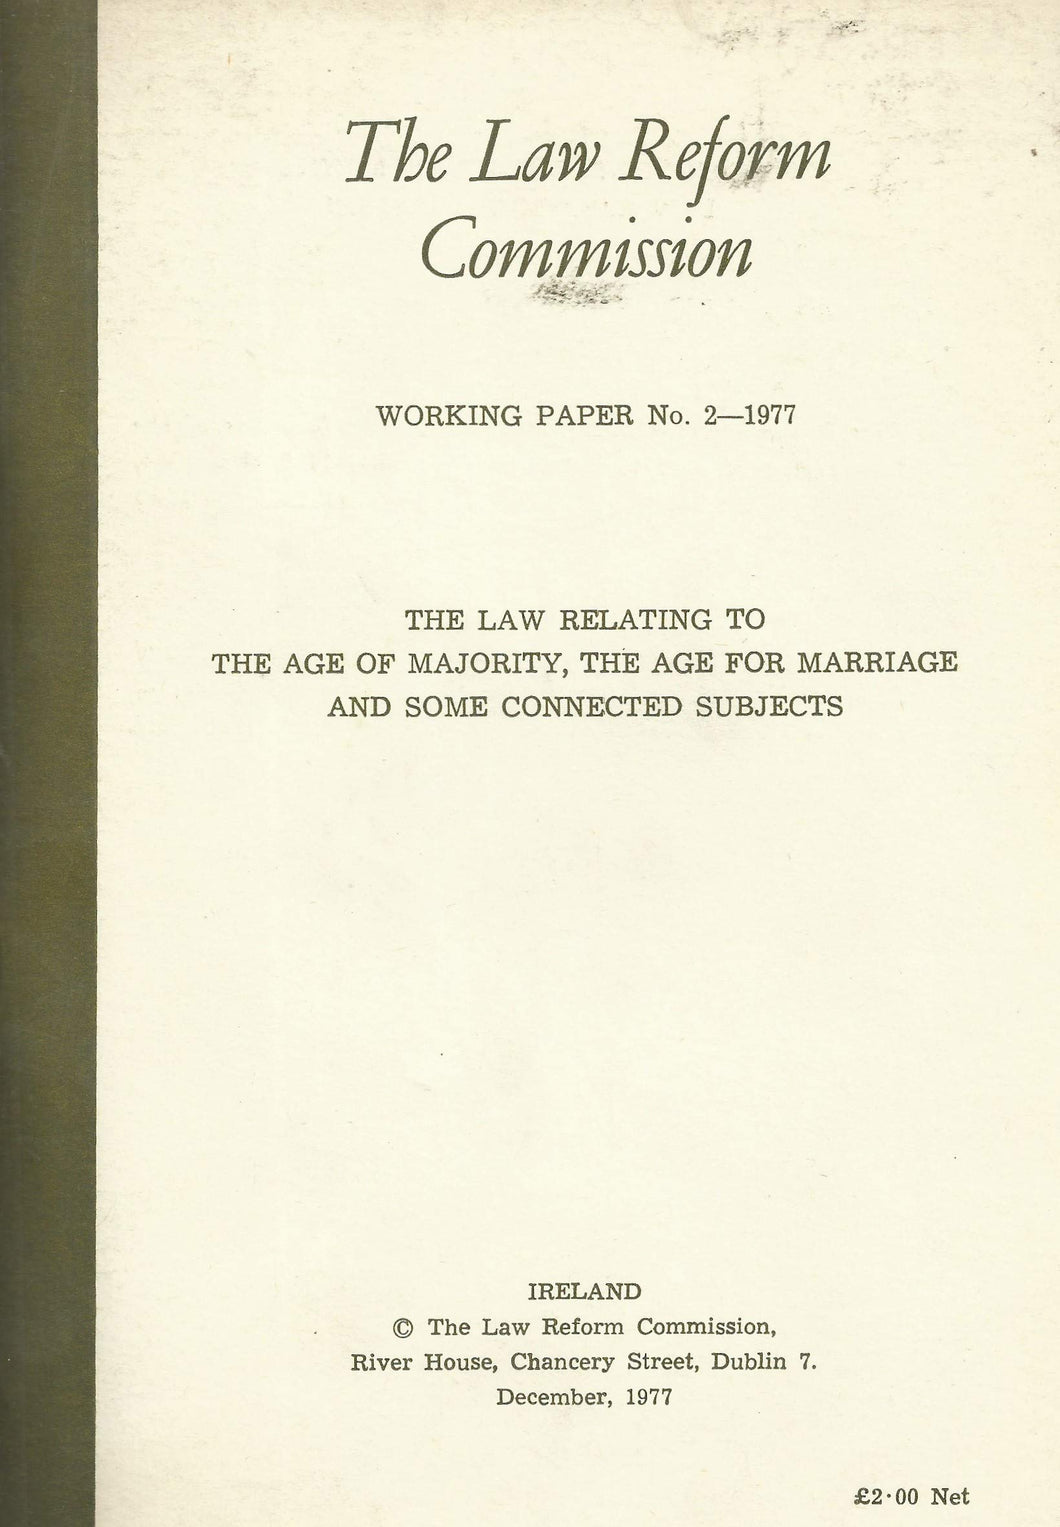 The Law Relating to the Age of Majority, the Age for Marriage and Some Connected Subjects - The Law Reform Commission (Ireland)/An Coimisiún um Athchóiriú an Dlí Working Paper No. 2 - 1977